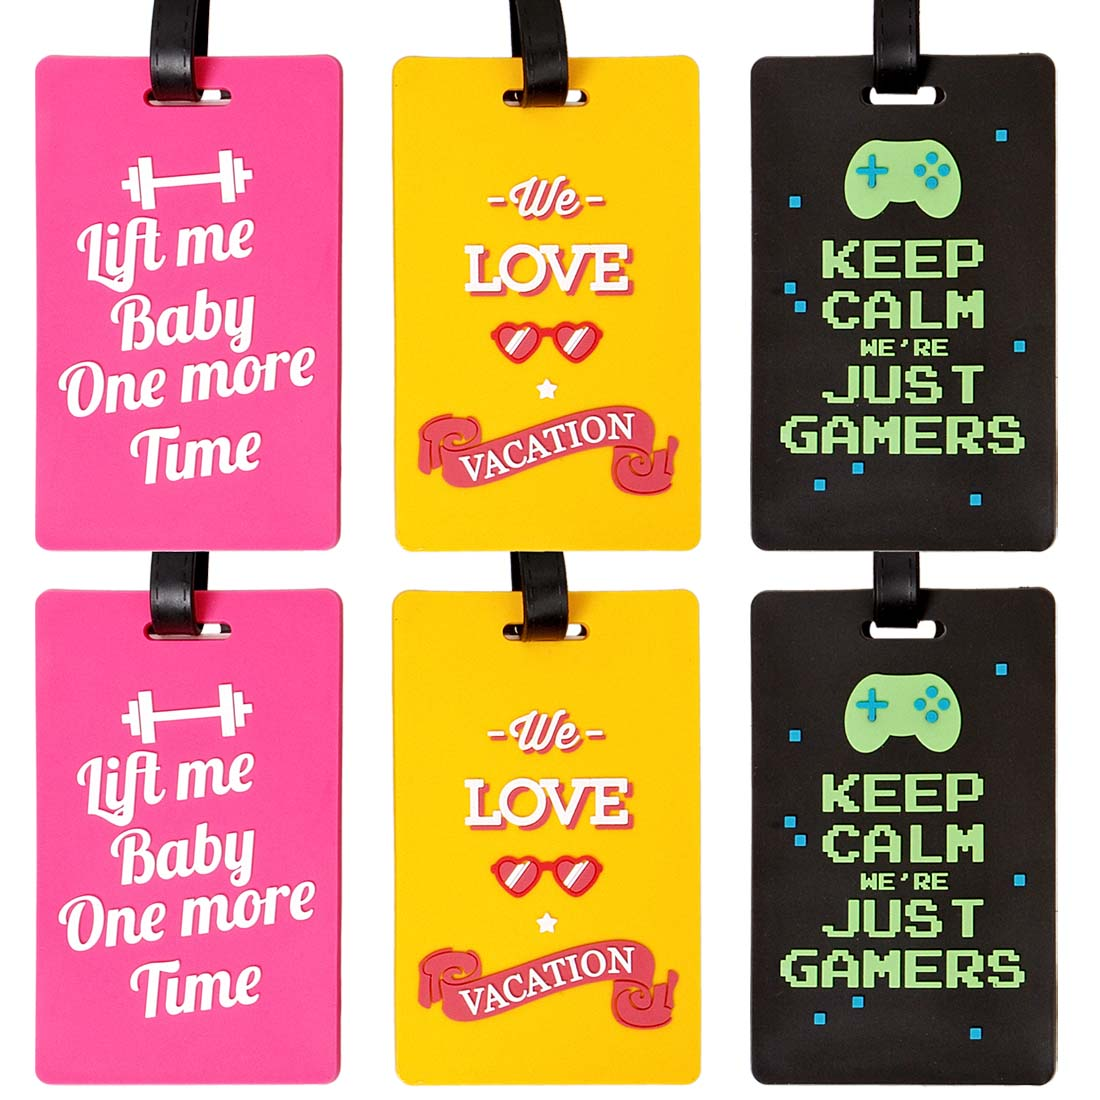 Bundle Monster 6pc Silicone Mixed Pop Culture Design Luggage Bag Tags - Set 5